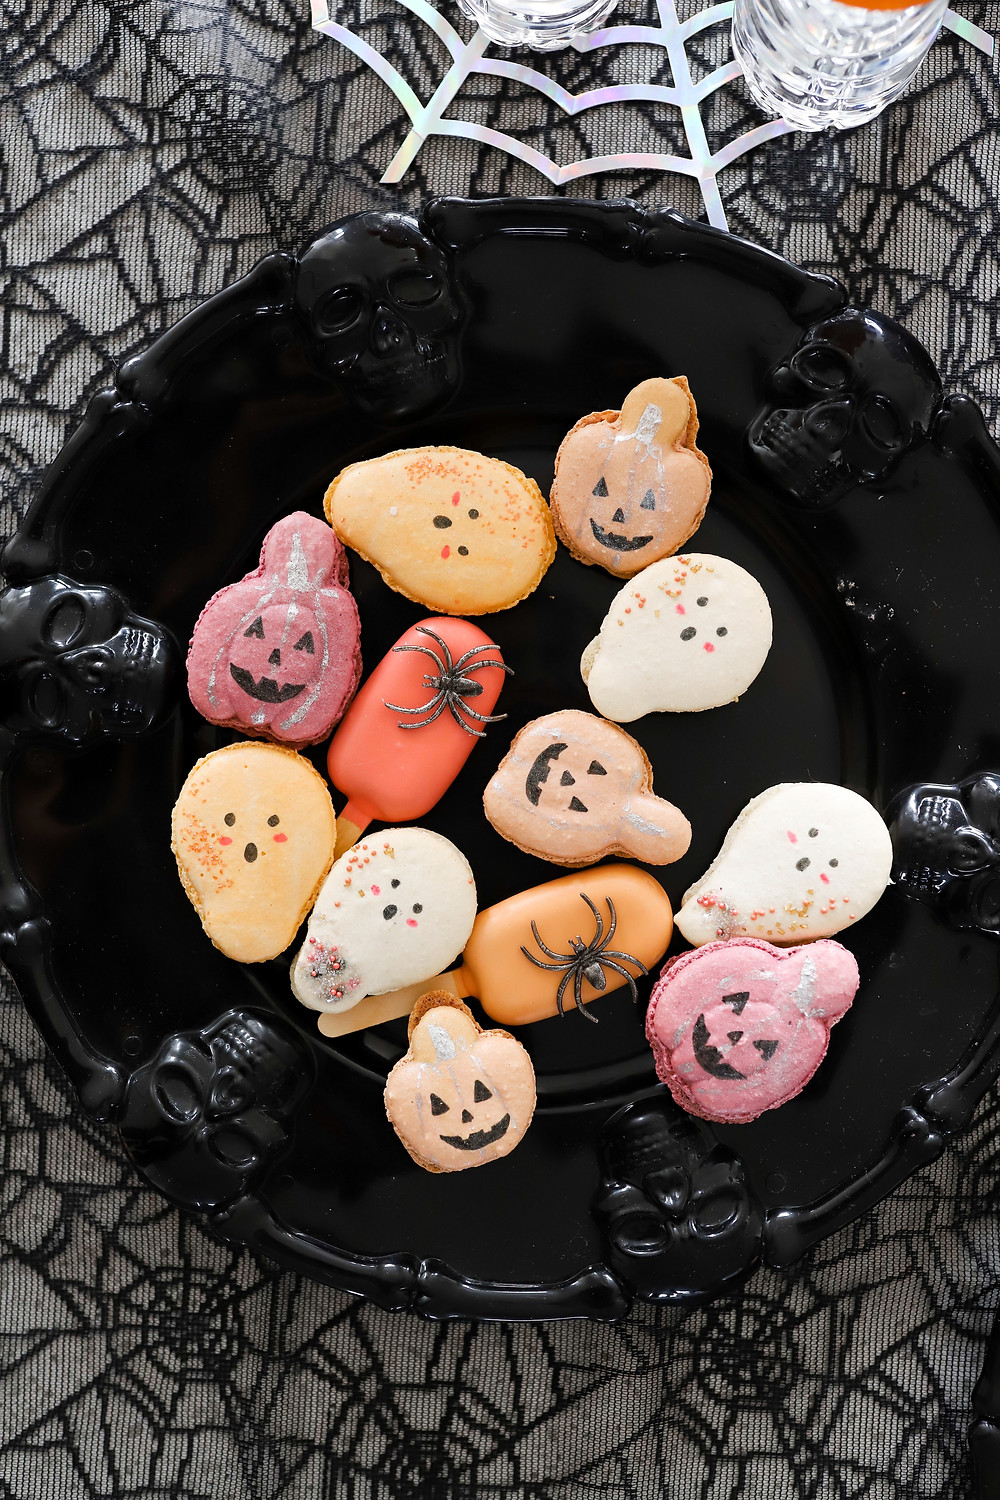 A black and metallic spider web cloth with a black skeleton serving tray holding an assortment of white, orange, yellow, and pink pumpkin, spider, and ghost kid's halloween cookies.